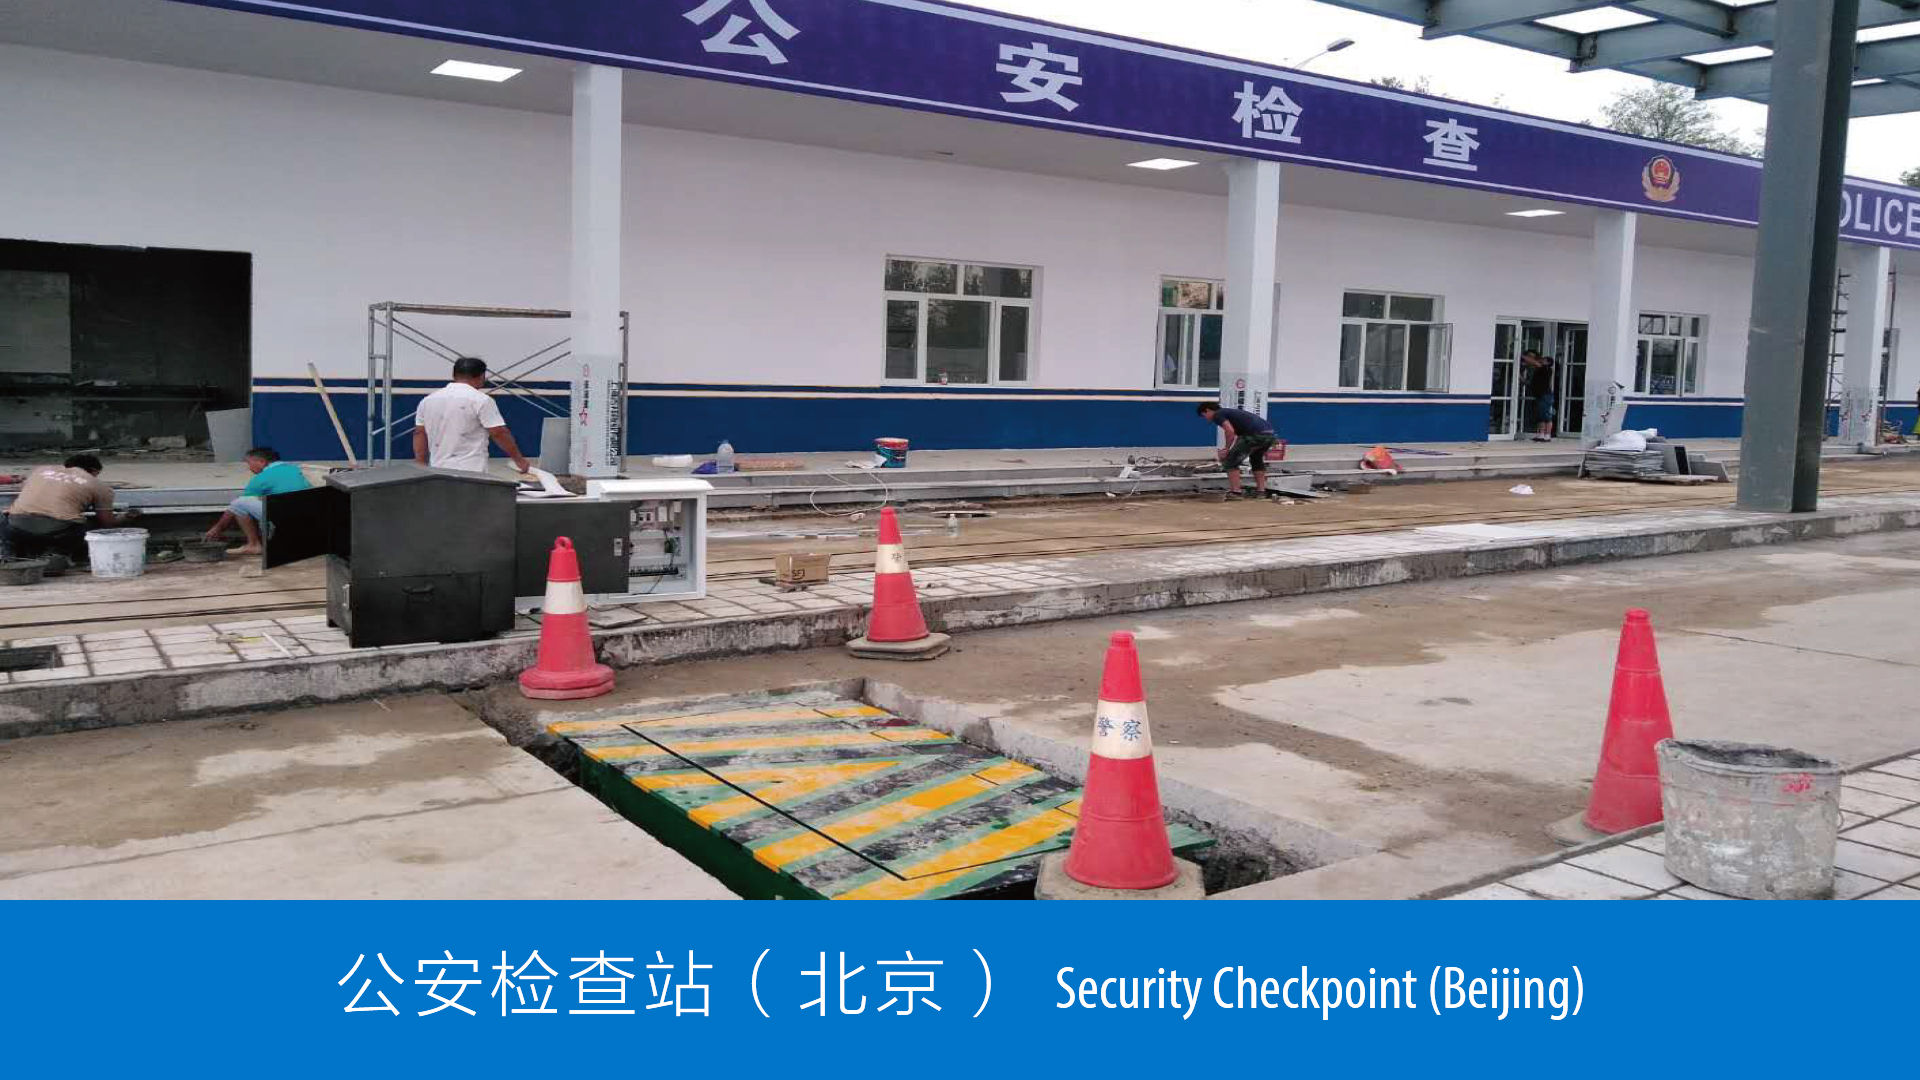 Road blocker - Security Checkpoint - Bei